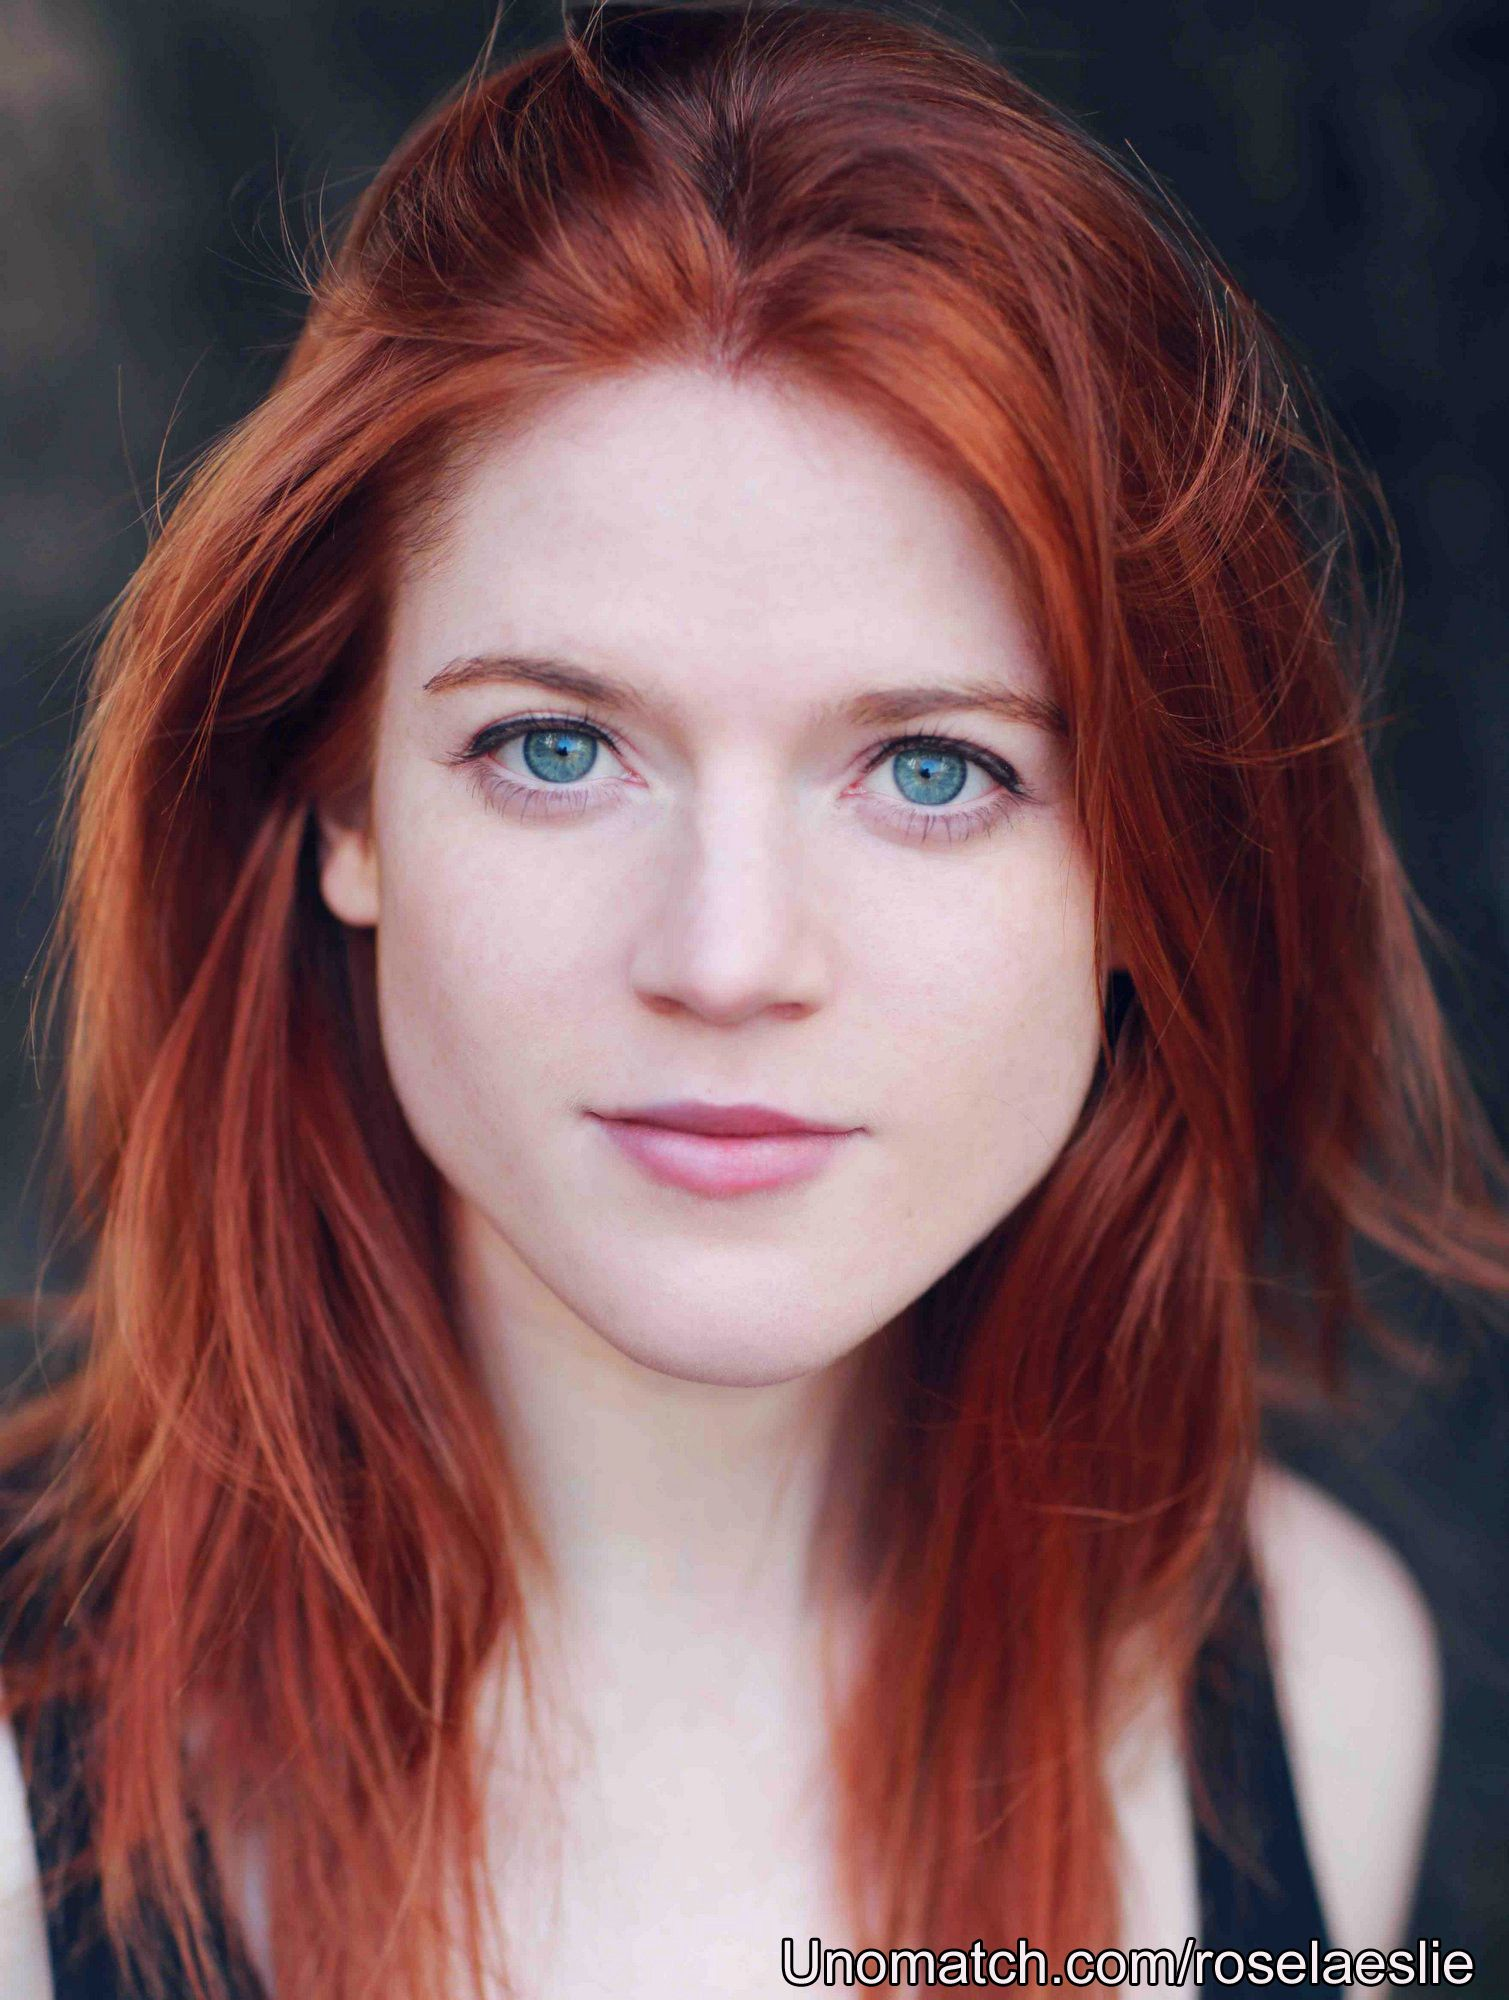 Rose Leslie Is A Scottish Actress Best Known For Her Portrayals Of